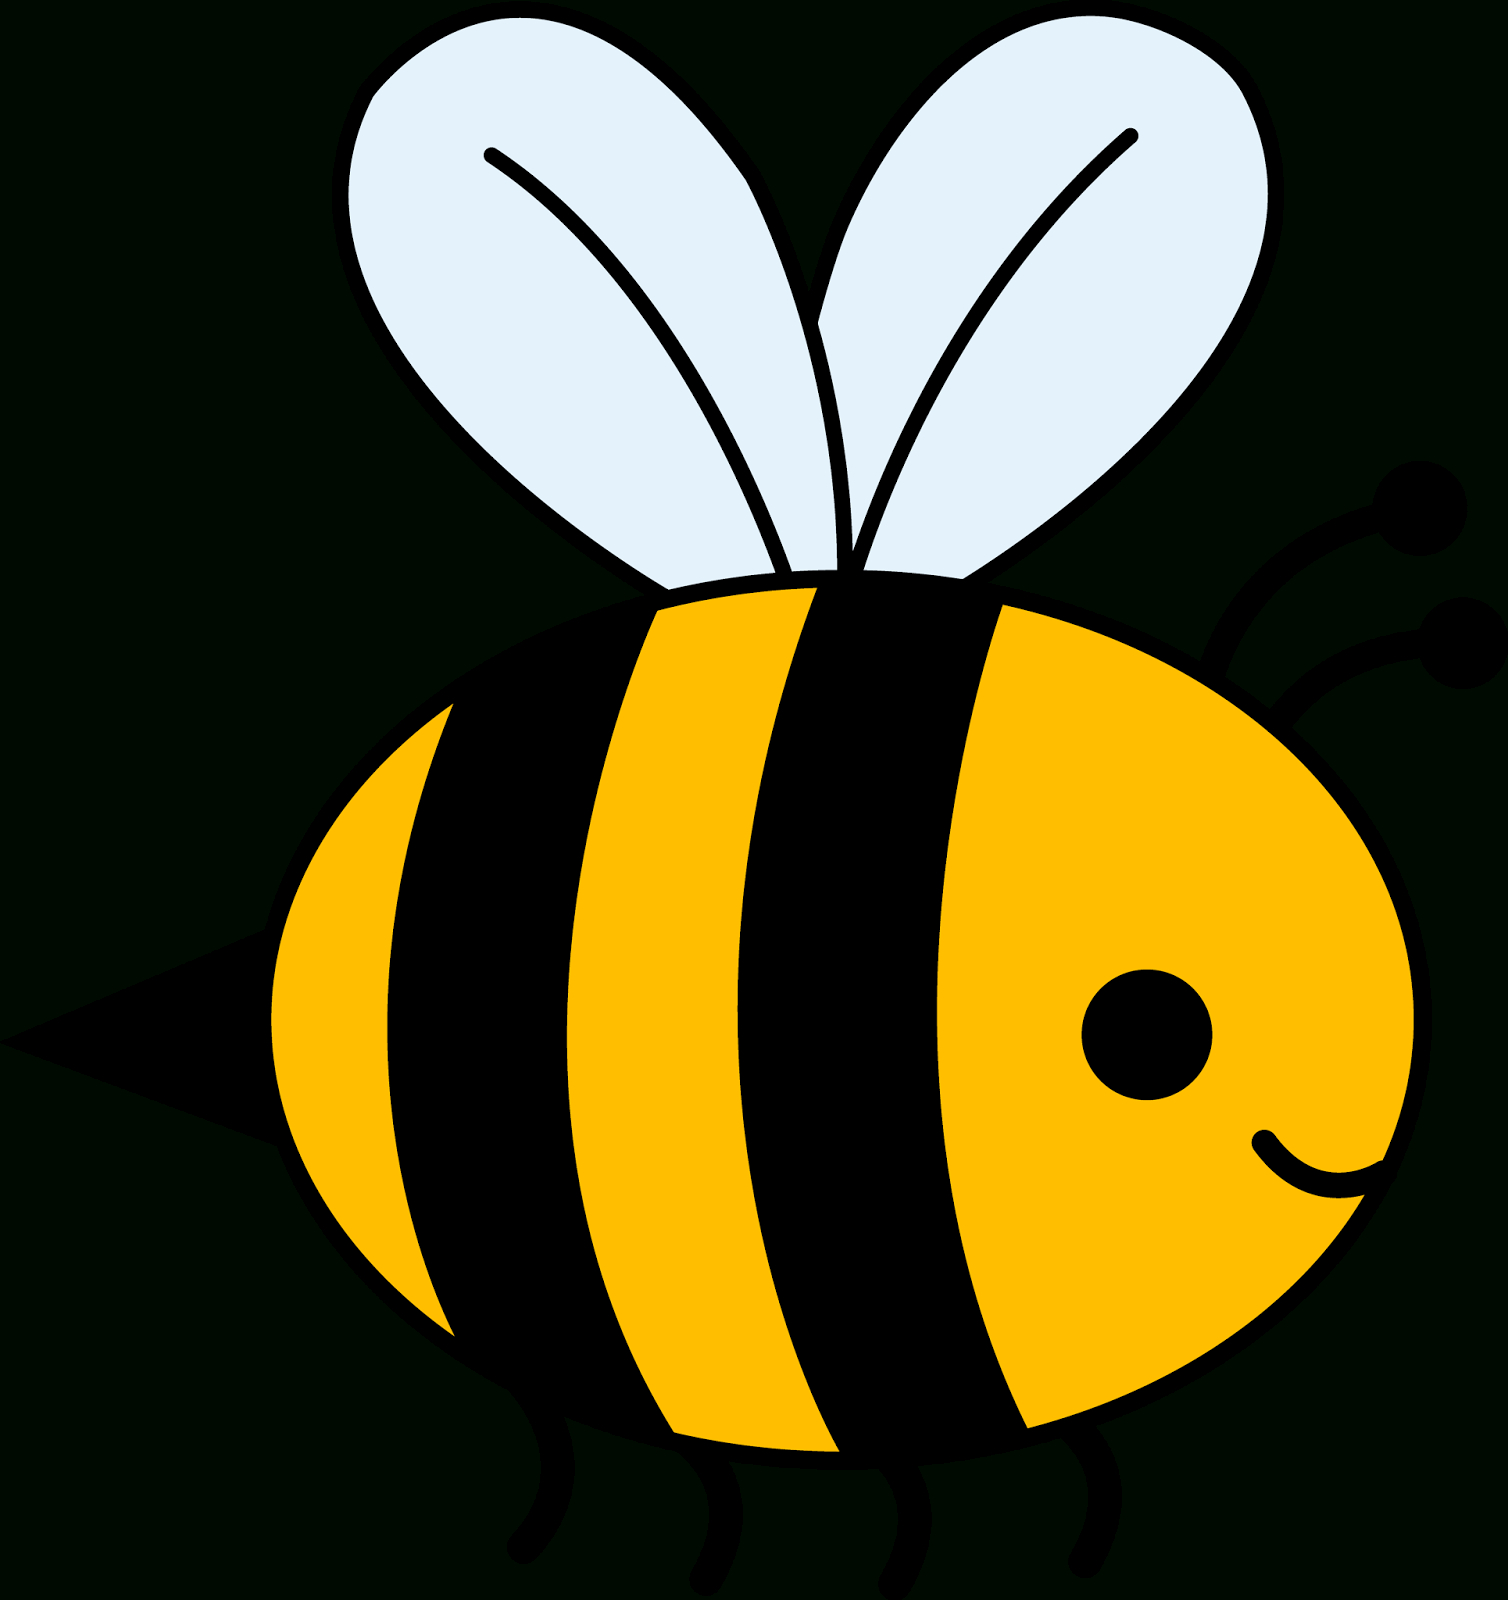 Bee clipart easy. Simple drawing at getdrawings